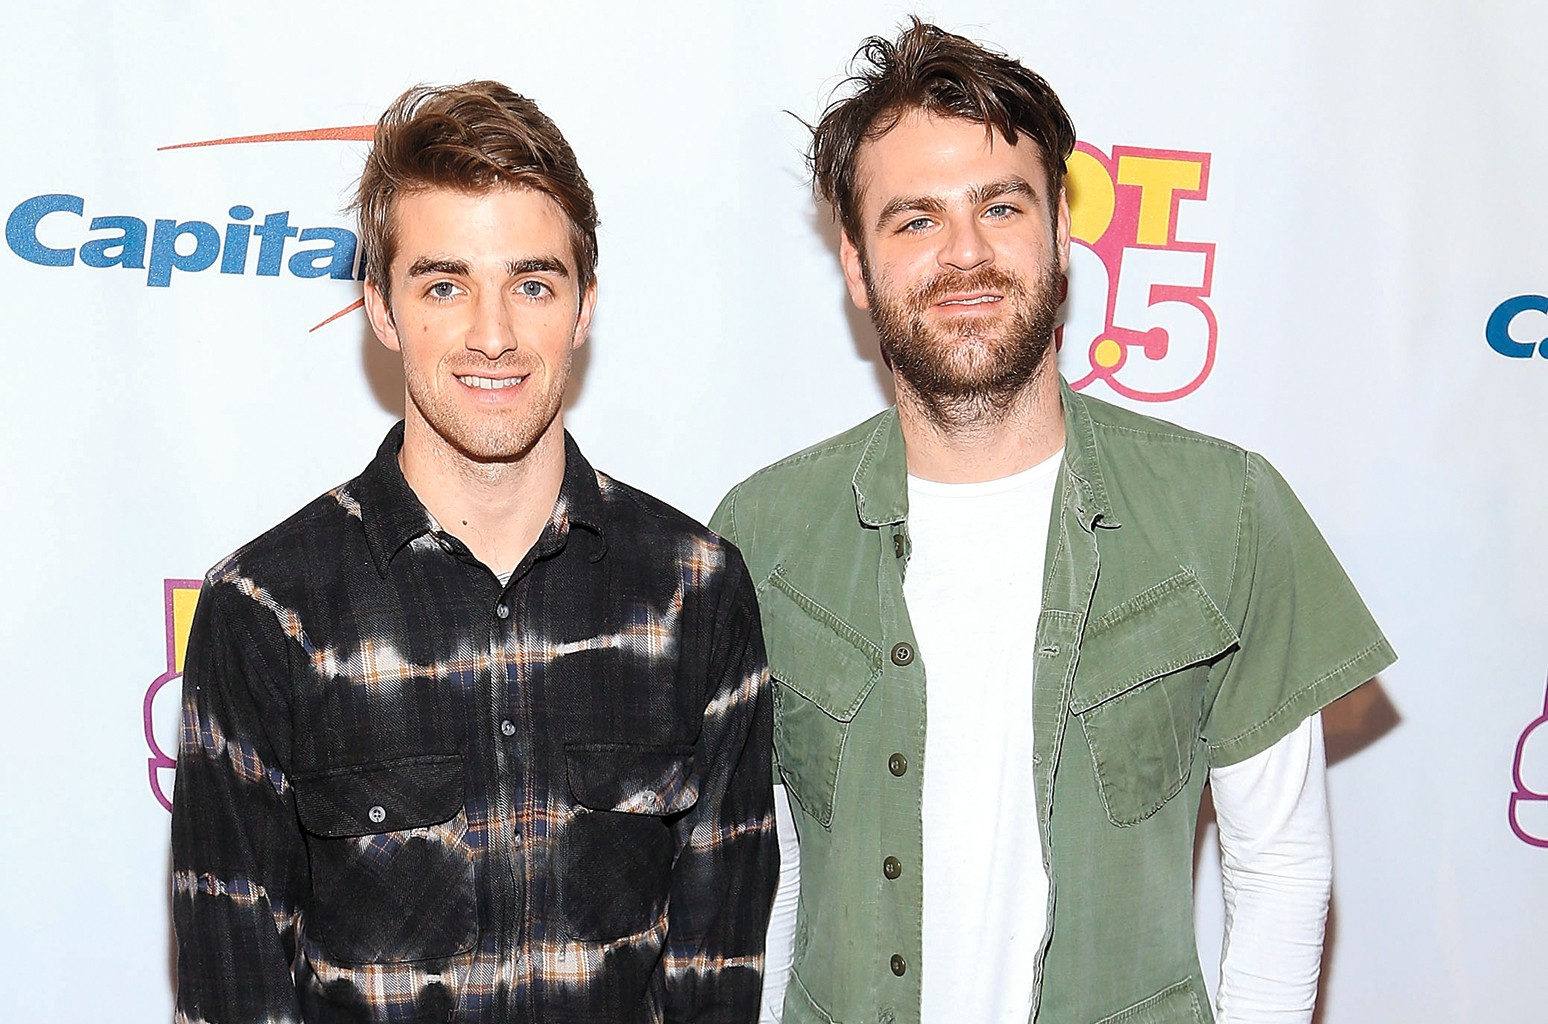 Andrew Taggart and Alex Pall of The Chainsmokers arrive at Hot 99.5's Jingle Ball 2016 at the Verizon Center on Dec. 12, 2016 in Washington, DC.